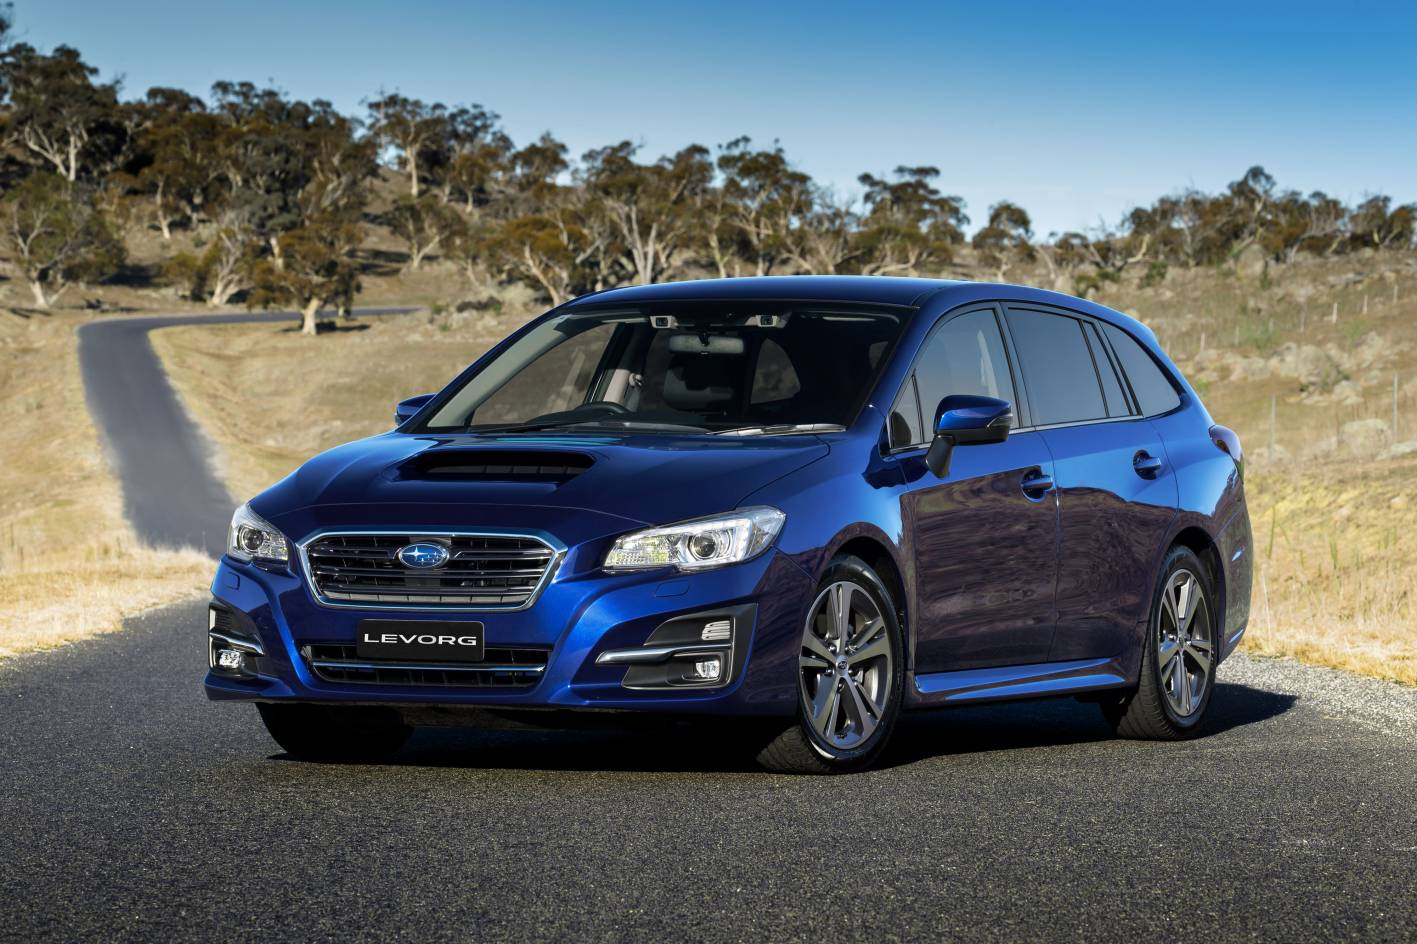 Subaru Levorg Vs Outback >> Subaru Levorg 1.6L Turbo added as new range-opener - ForceGT.com